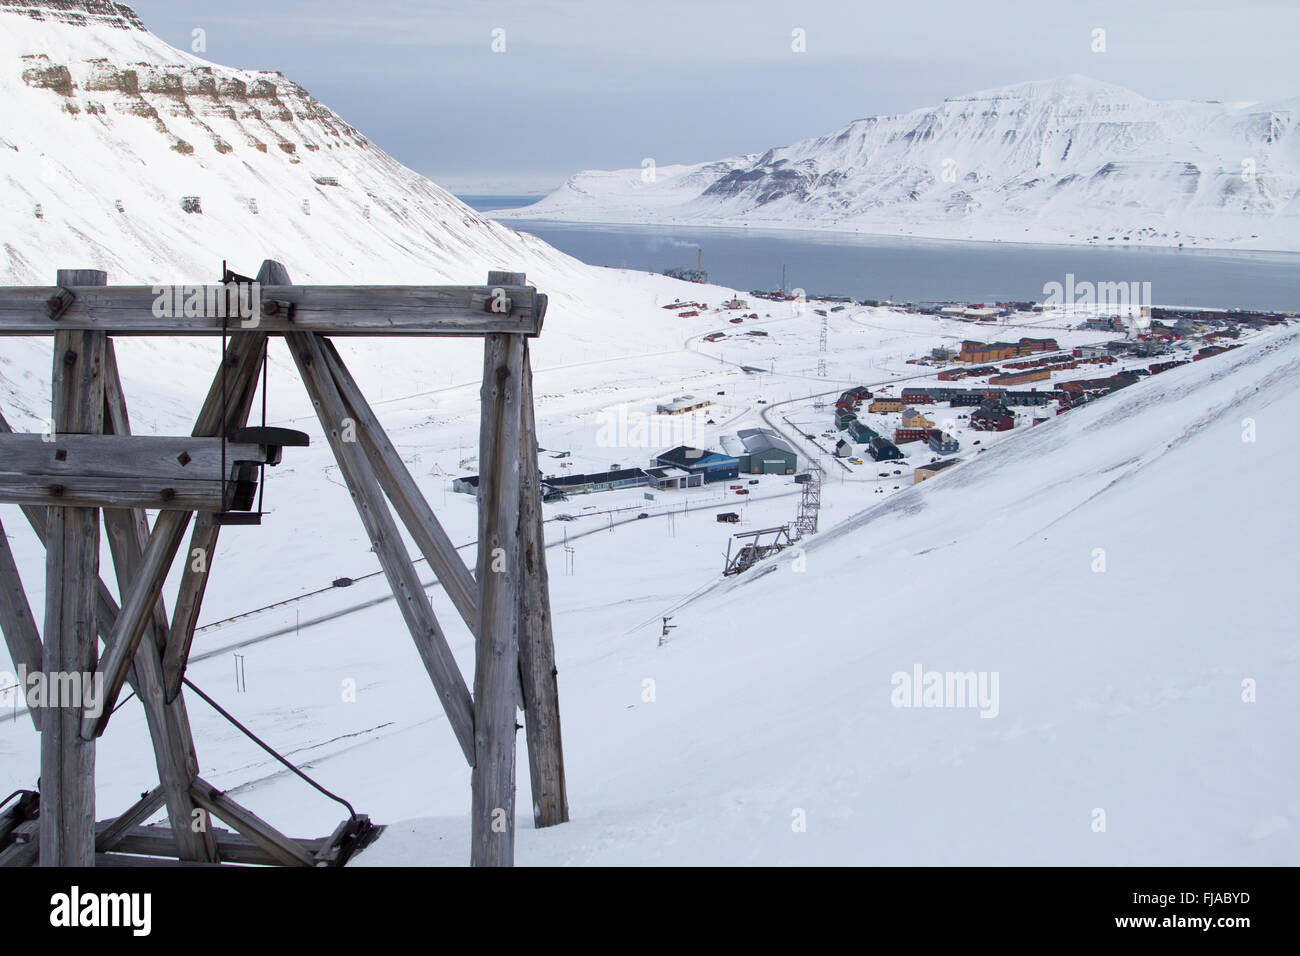 A town details of Longyearbyen - the most Northern settlement in the world. Spitsbergen (Svalbard). Norway. - Stock Image